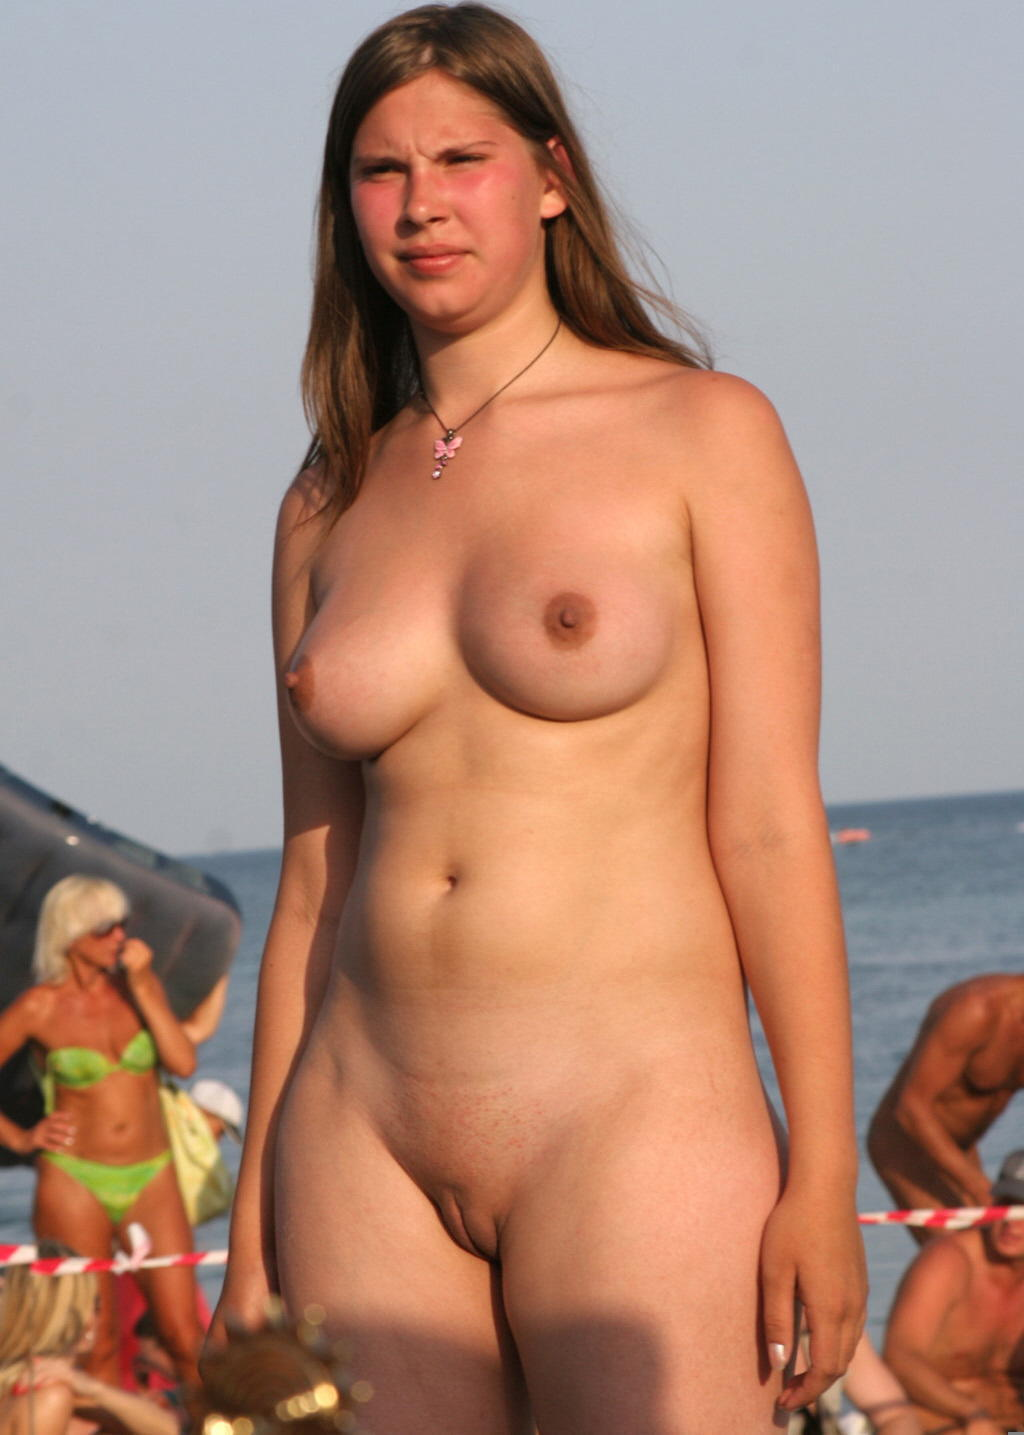 chubby nudist familly pic